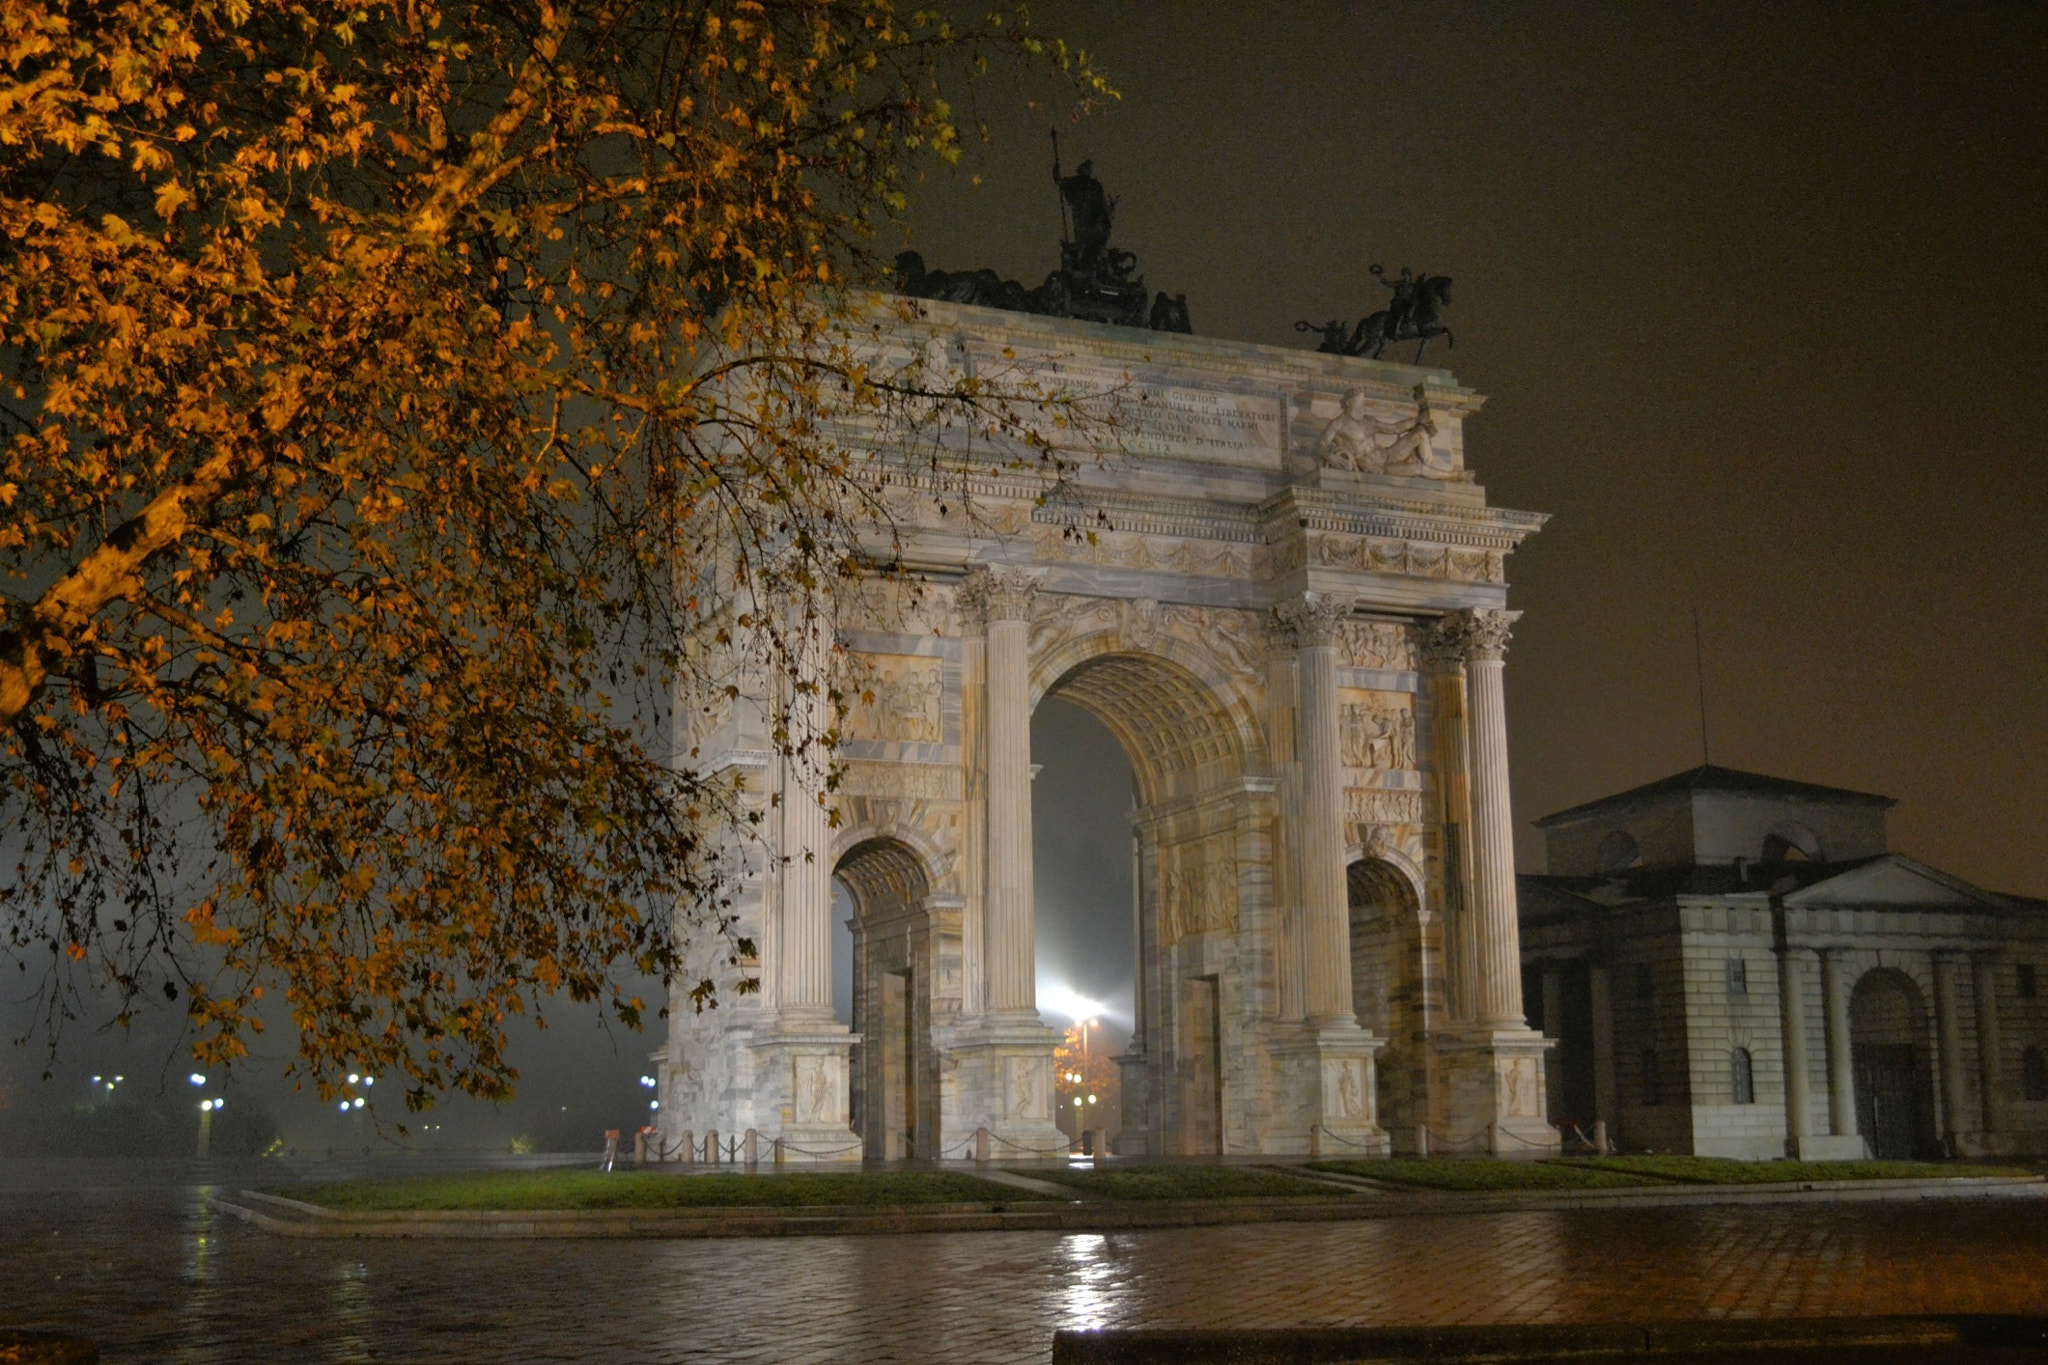 Photograph Arco della pace 2 by Matteo Barlassina on 500px